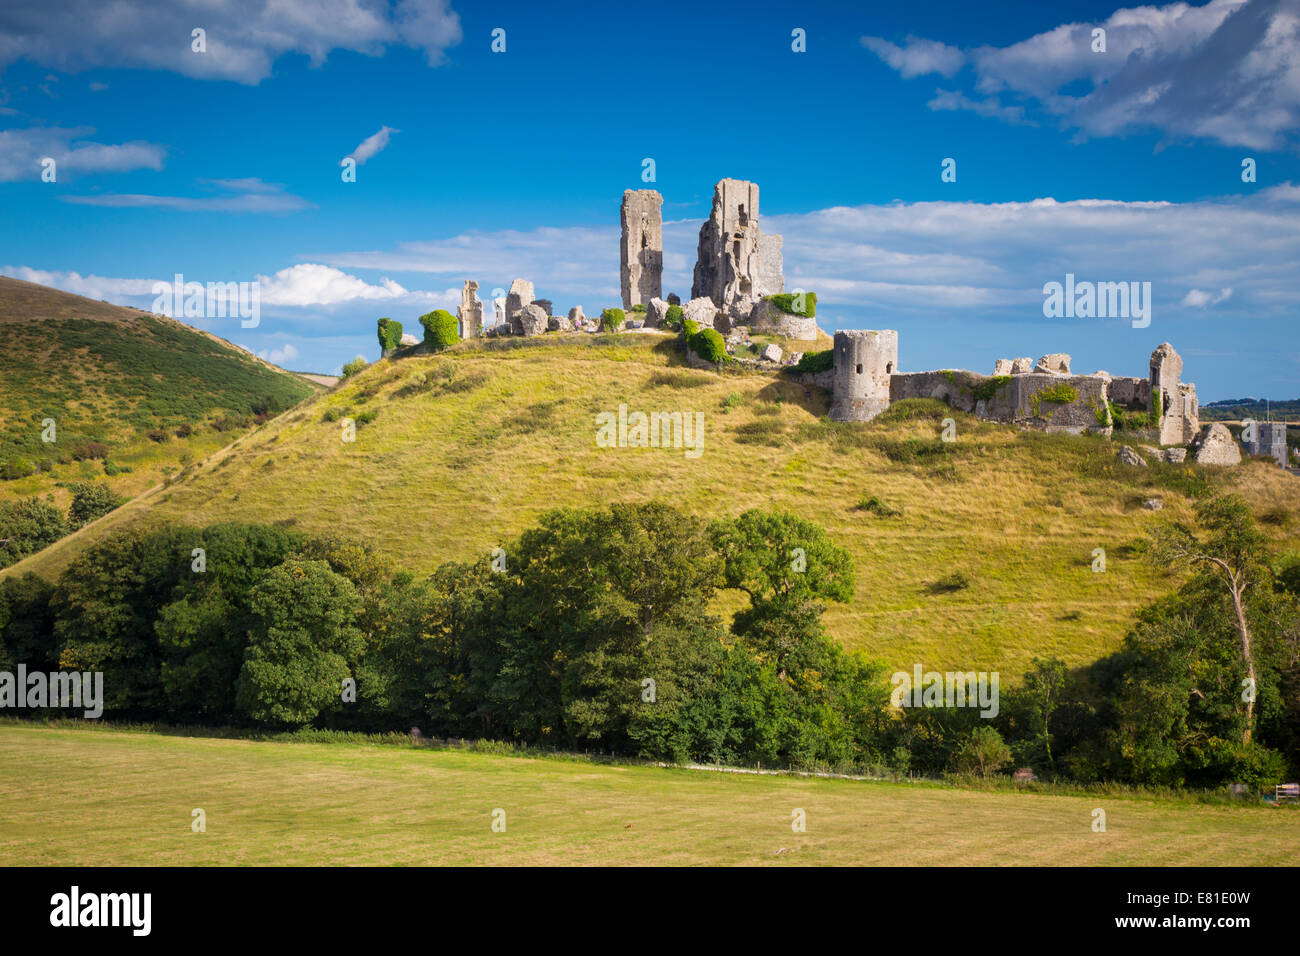 Ruins of Corfe Castle, built by William the Conqueror, near Wareham, , Isle of Purbeck, Dorset, England Stock Photo